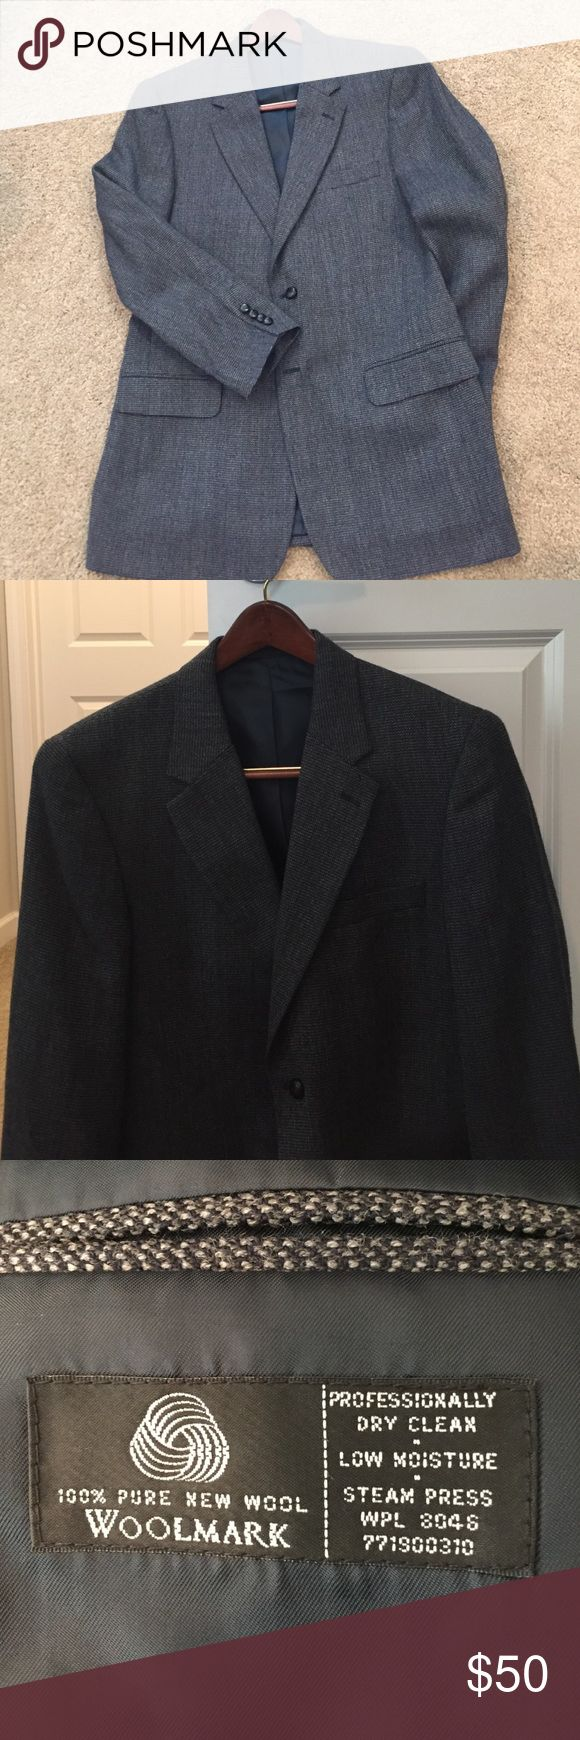 Men's Wool Blazer NWOT. Men's 100% wool blazer. Small moth hole on back of jacket (see pic). Savile Row Suits & Blazers Sport Coats & Blazers